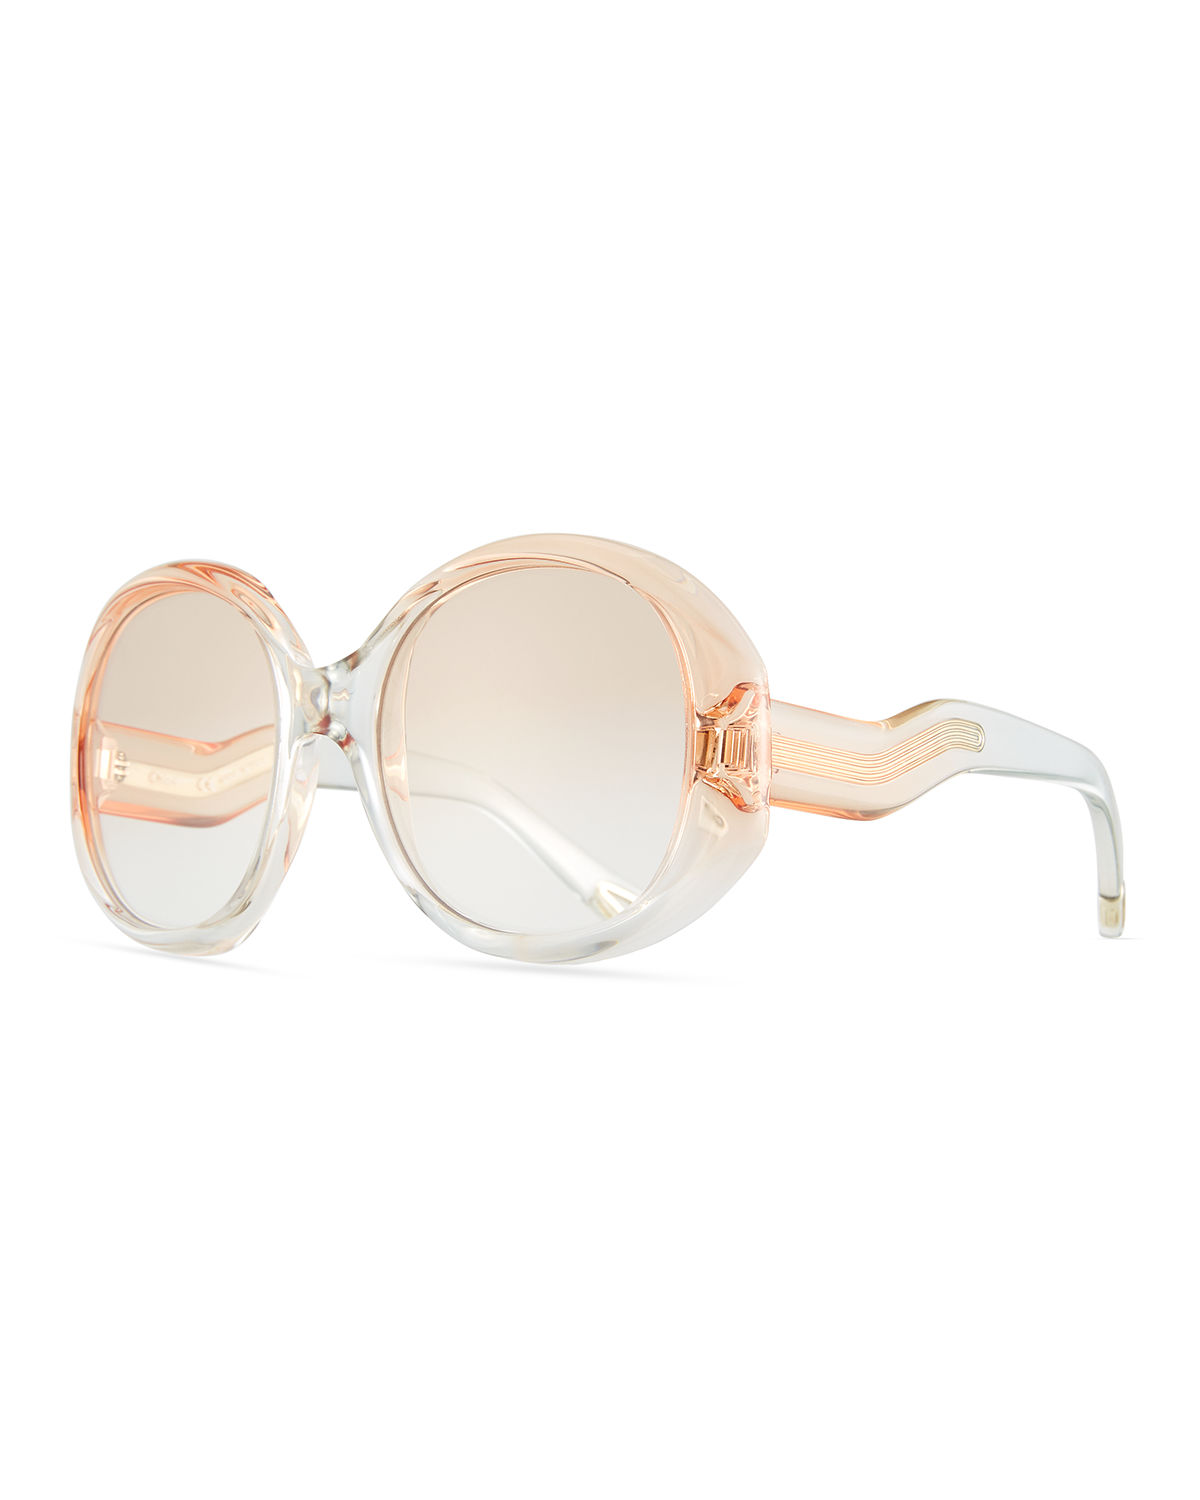 c494b6eab4a Chloe Qleo Semi-Transparent Oval Sunglasses